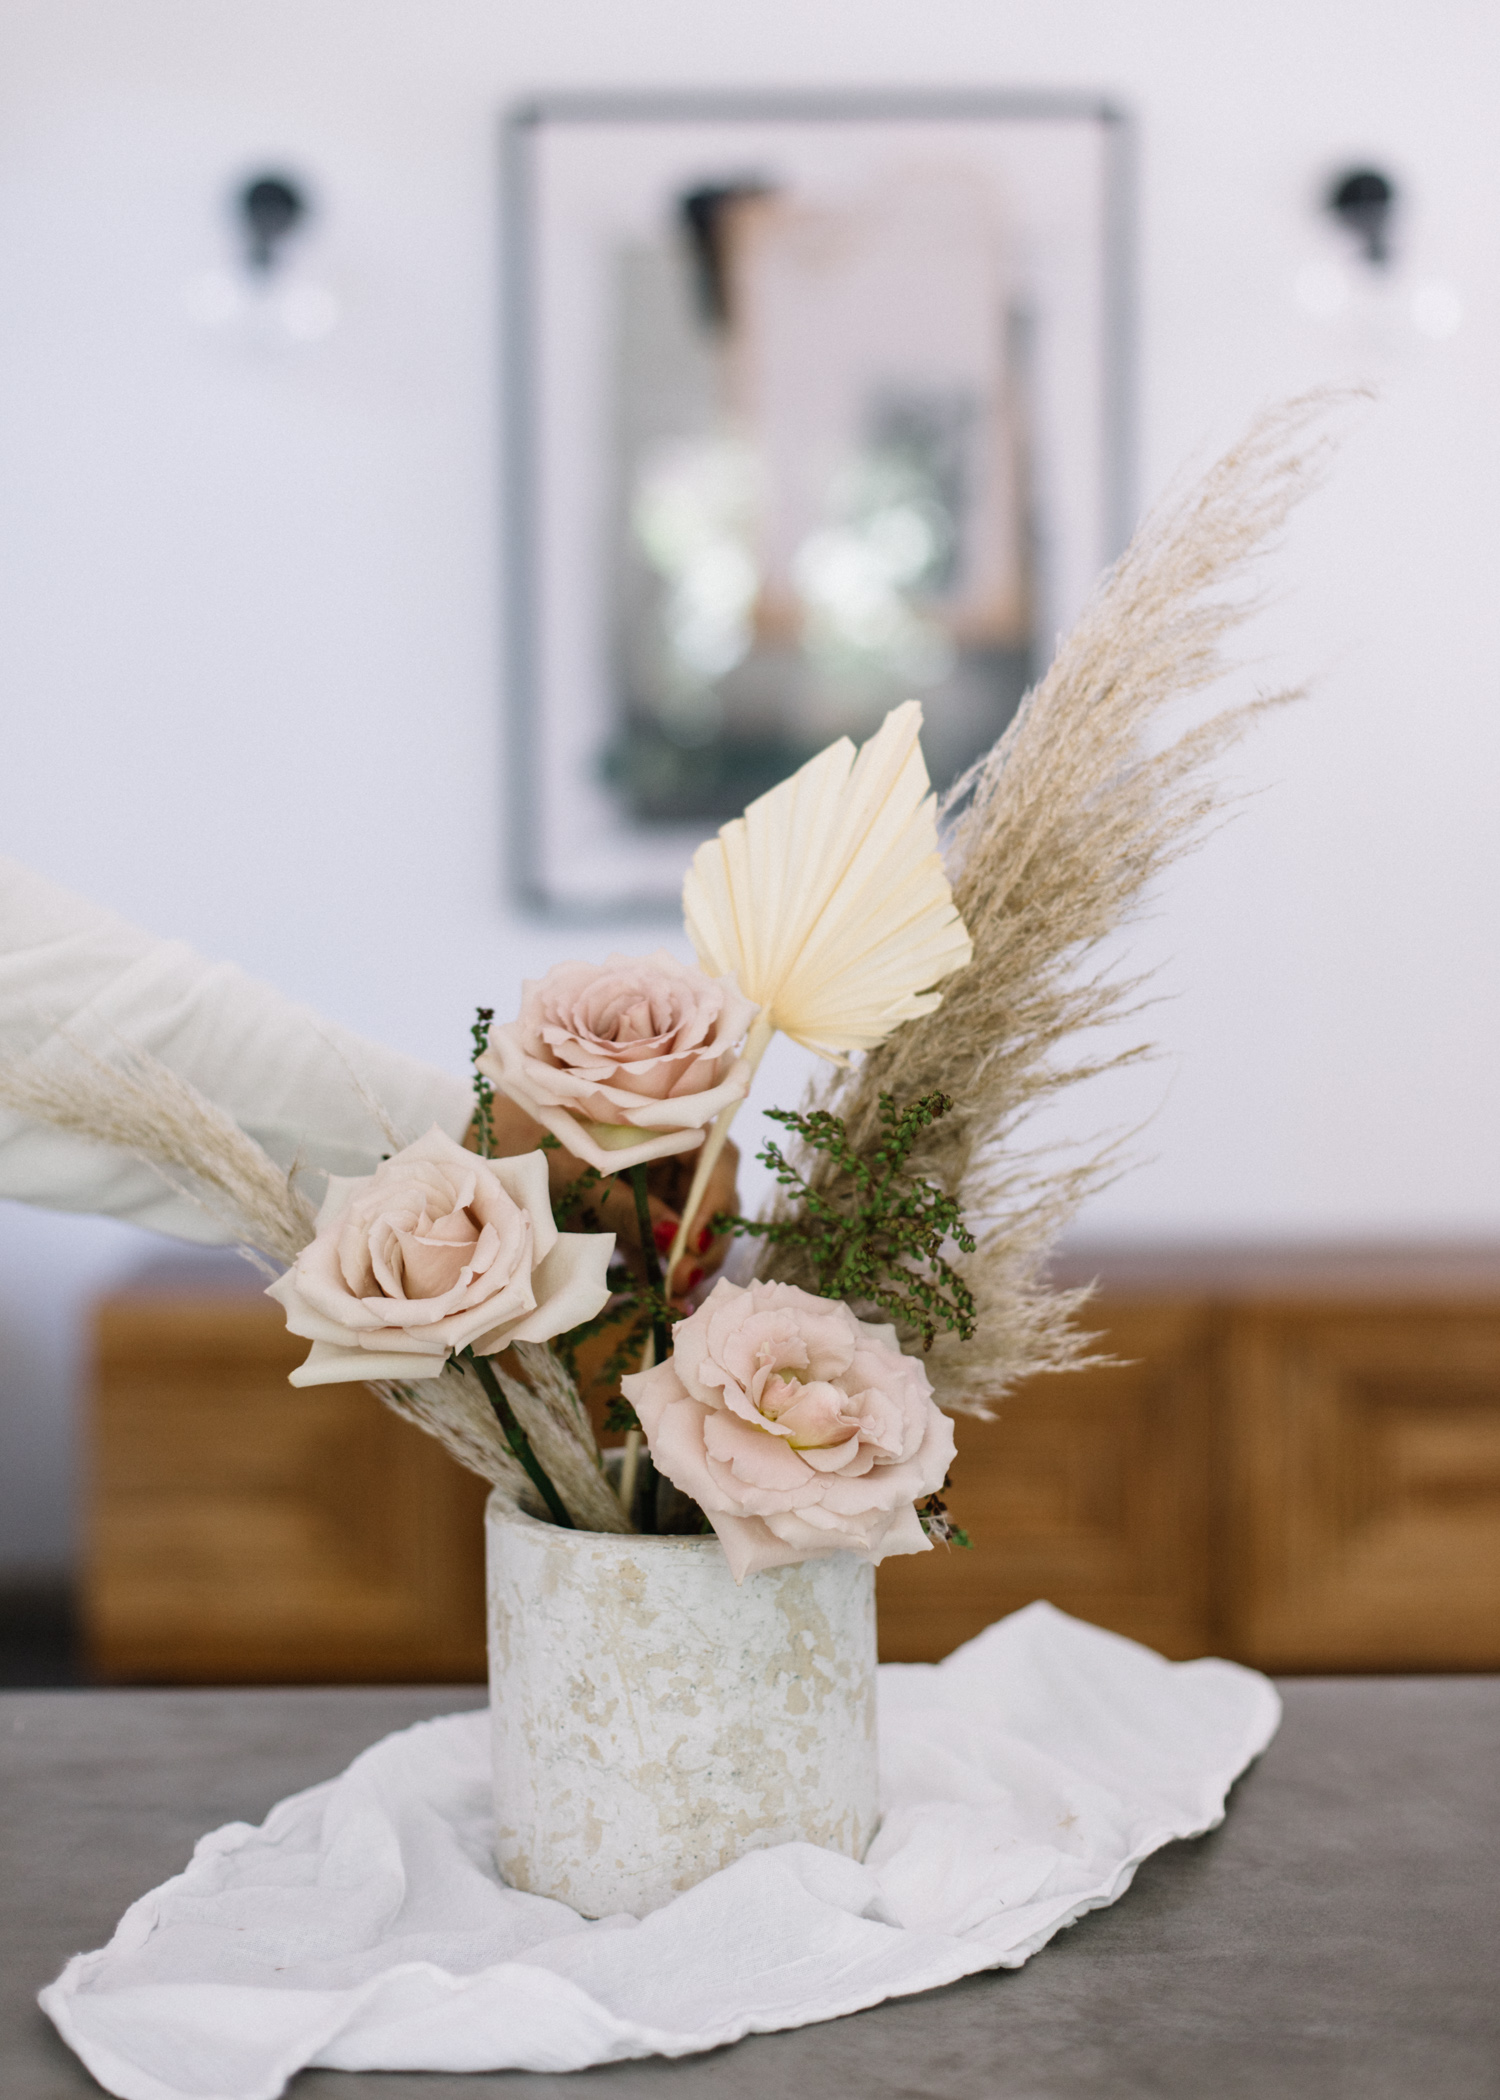 Dried and Fresh Florals || Summer Flowers - A Fabulous Fete